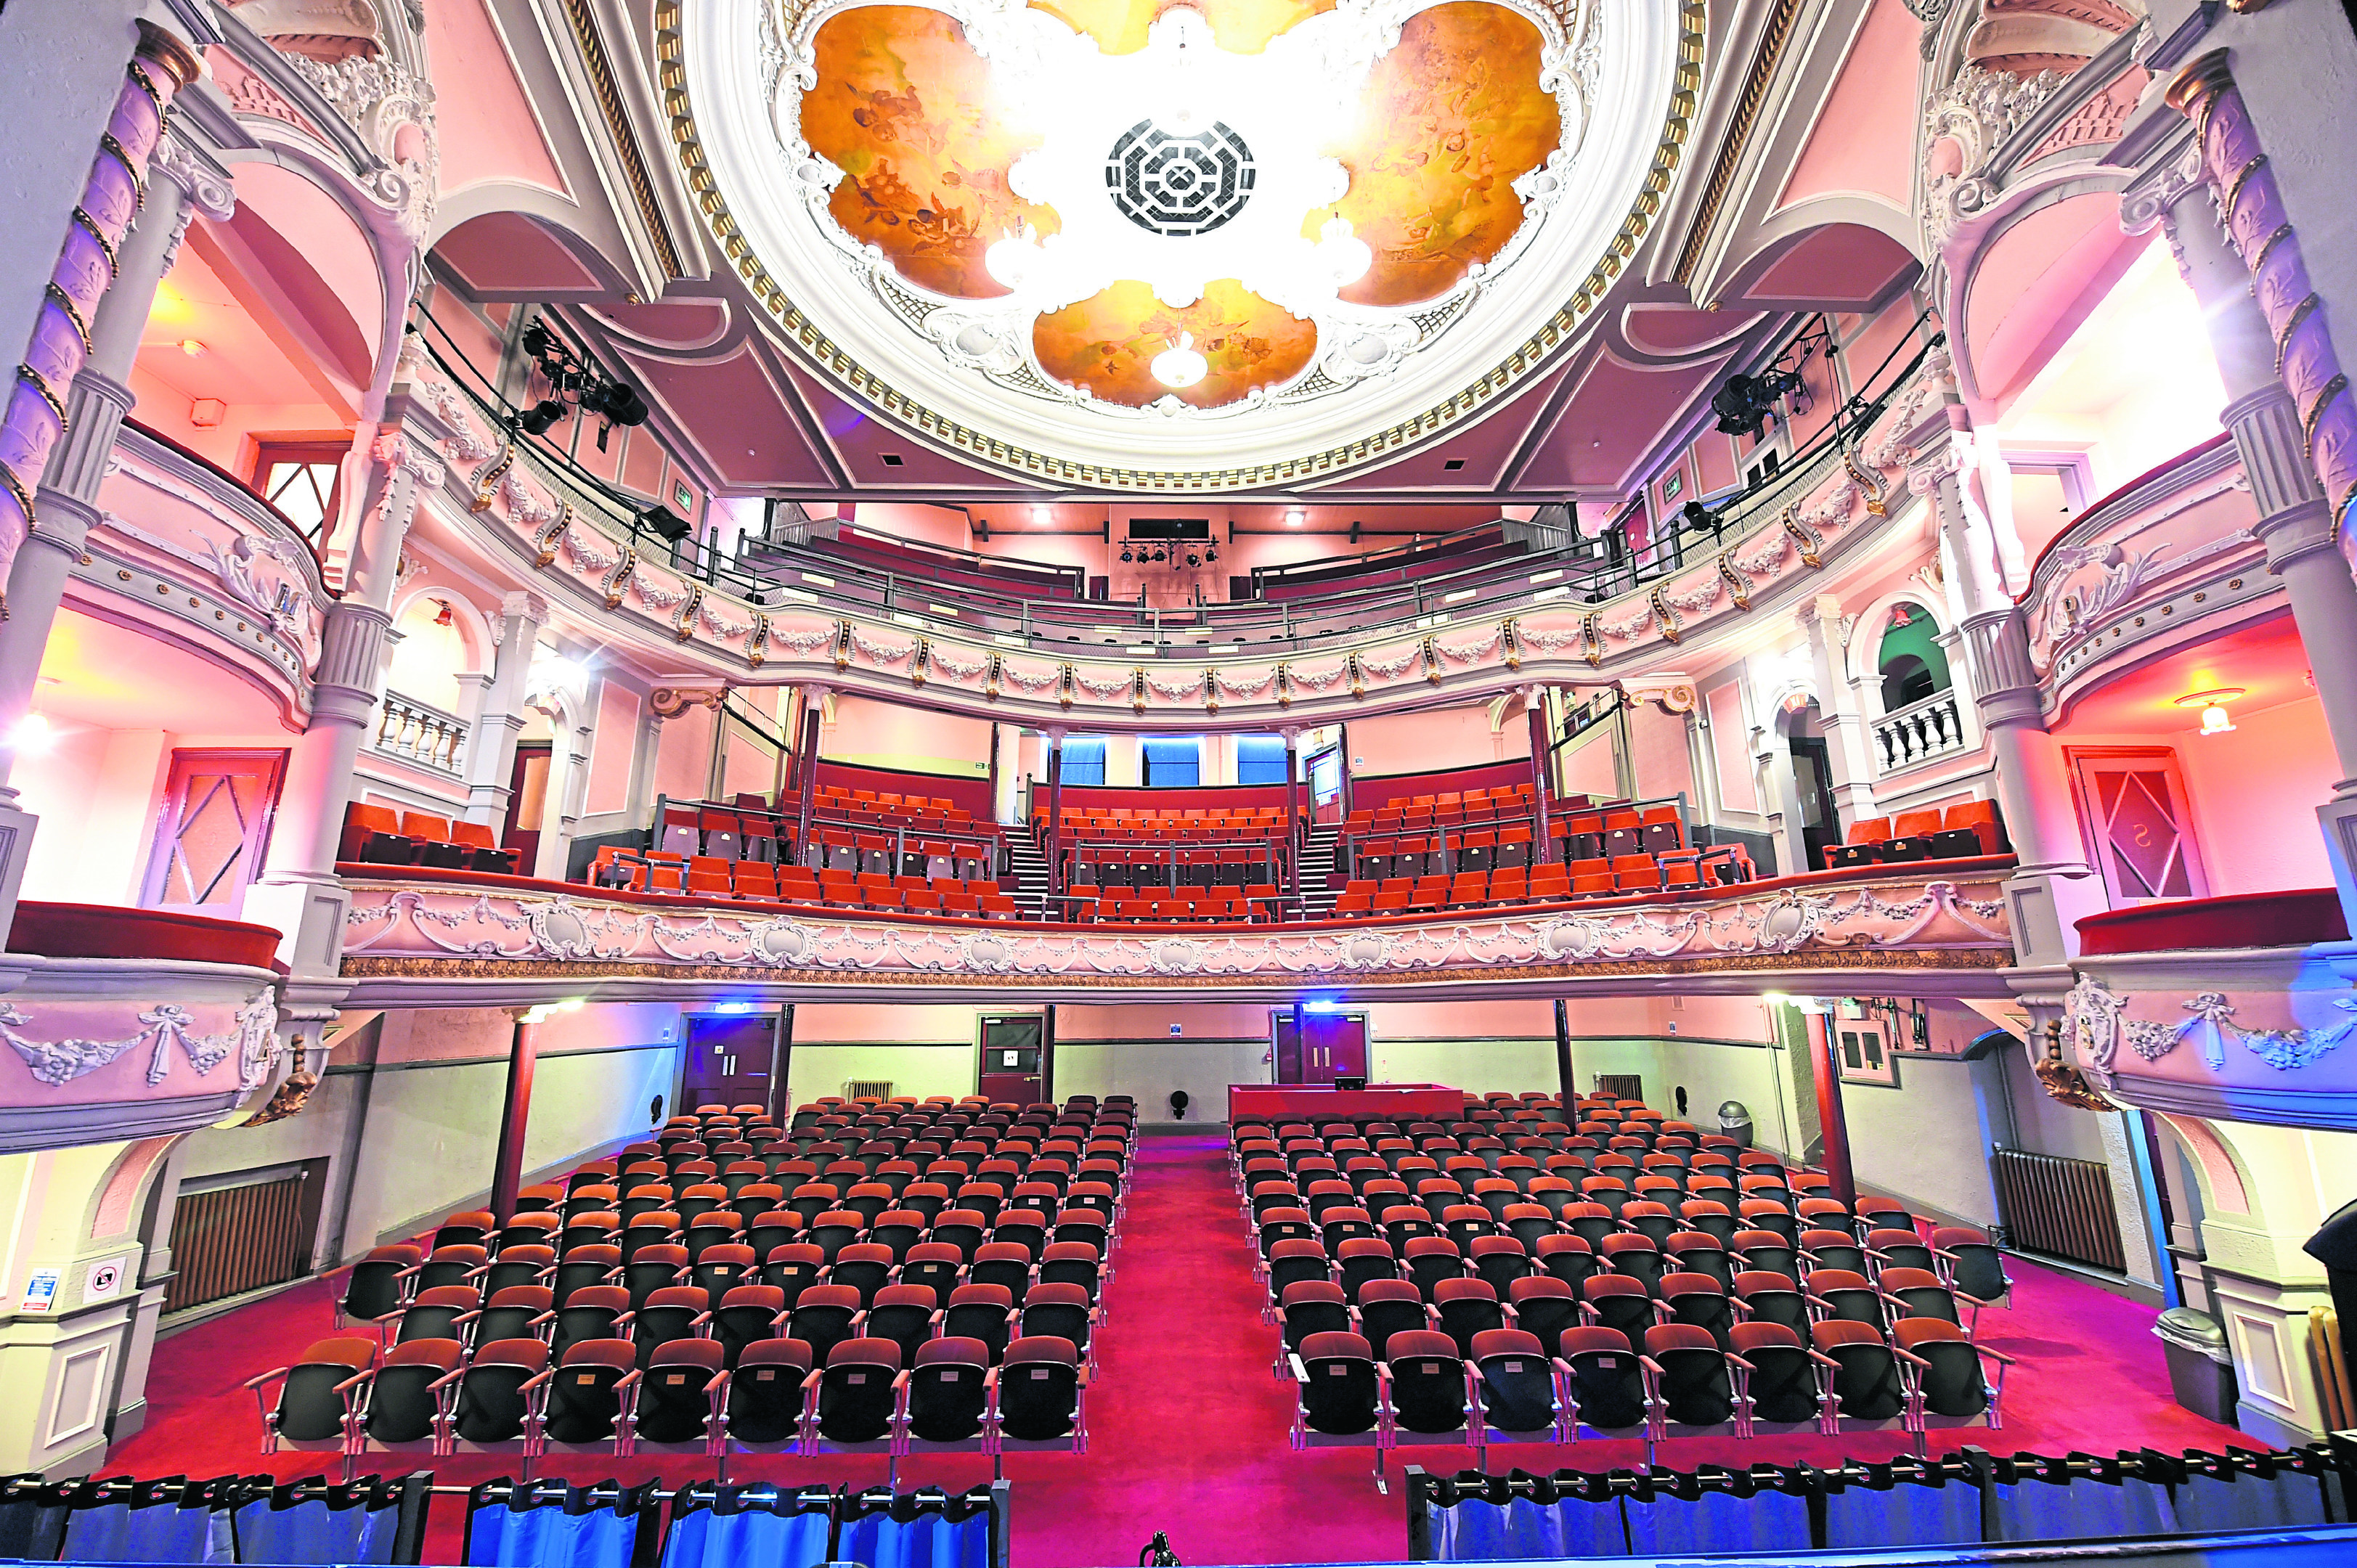 Tickets For Tivoli Theatre Aberdeen Aberdeen S Tivoli Theatre Arranges Global Event On Hogmanay